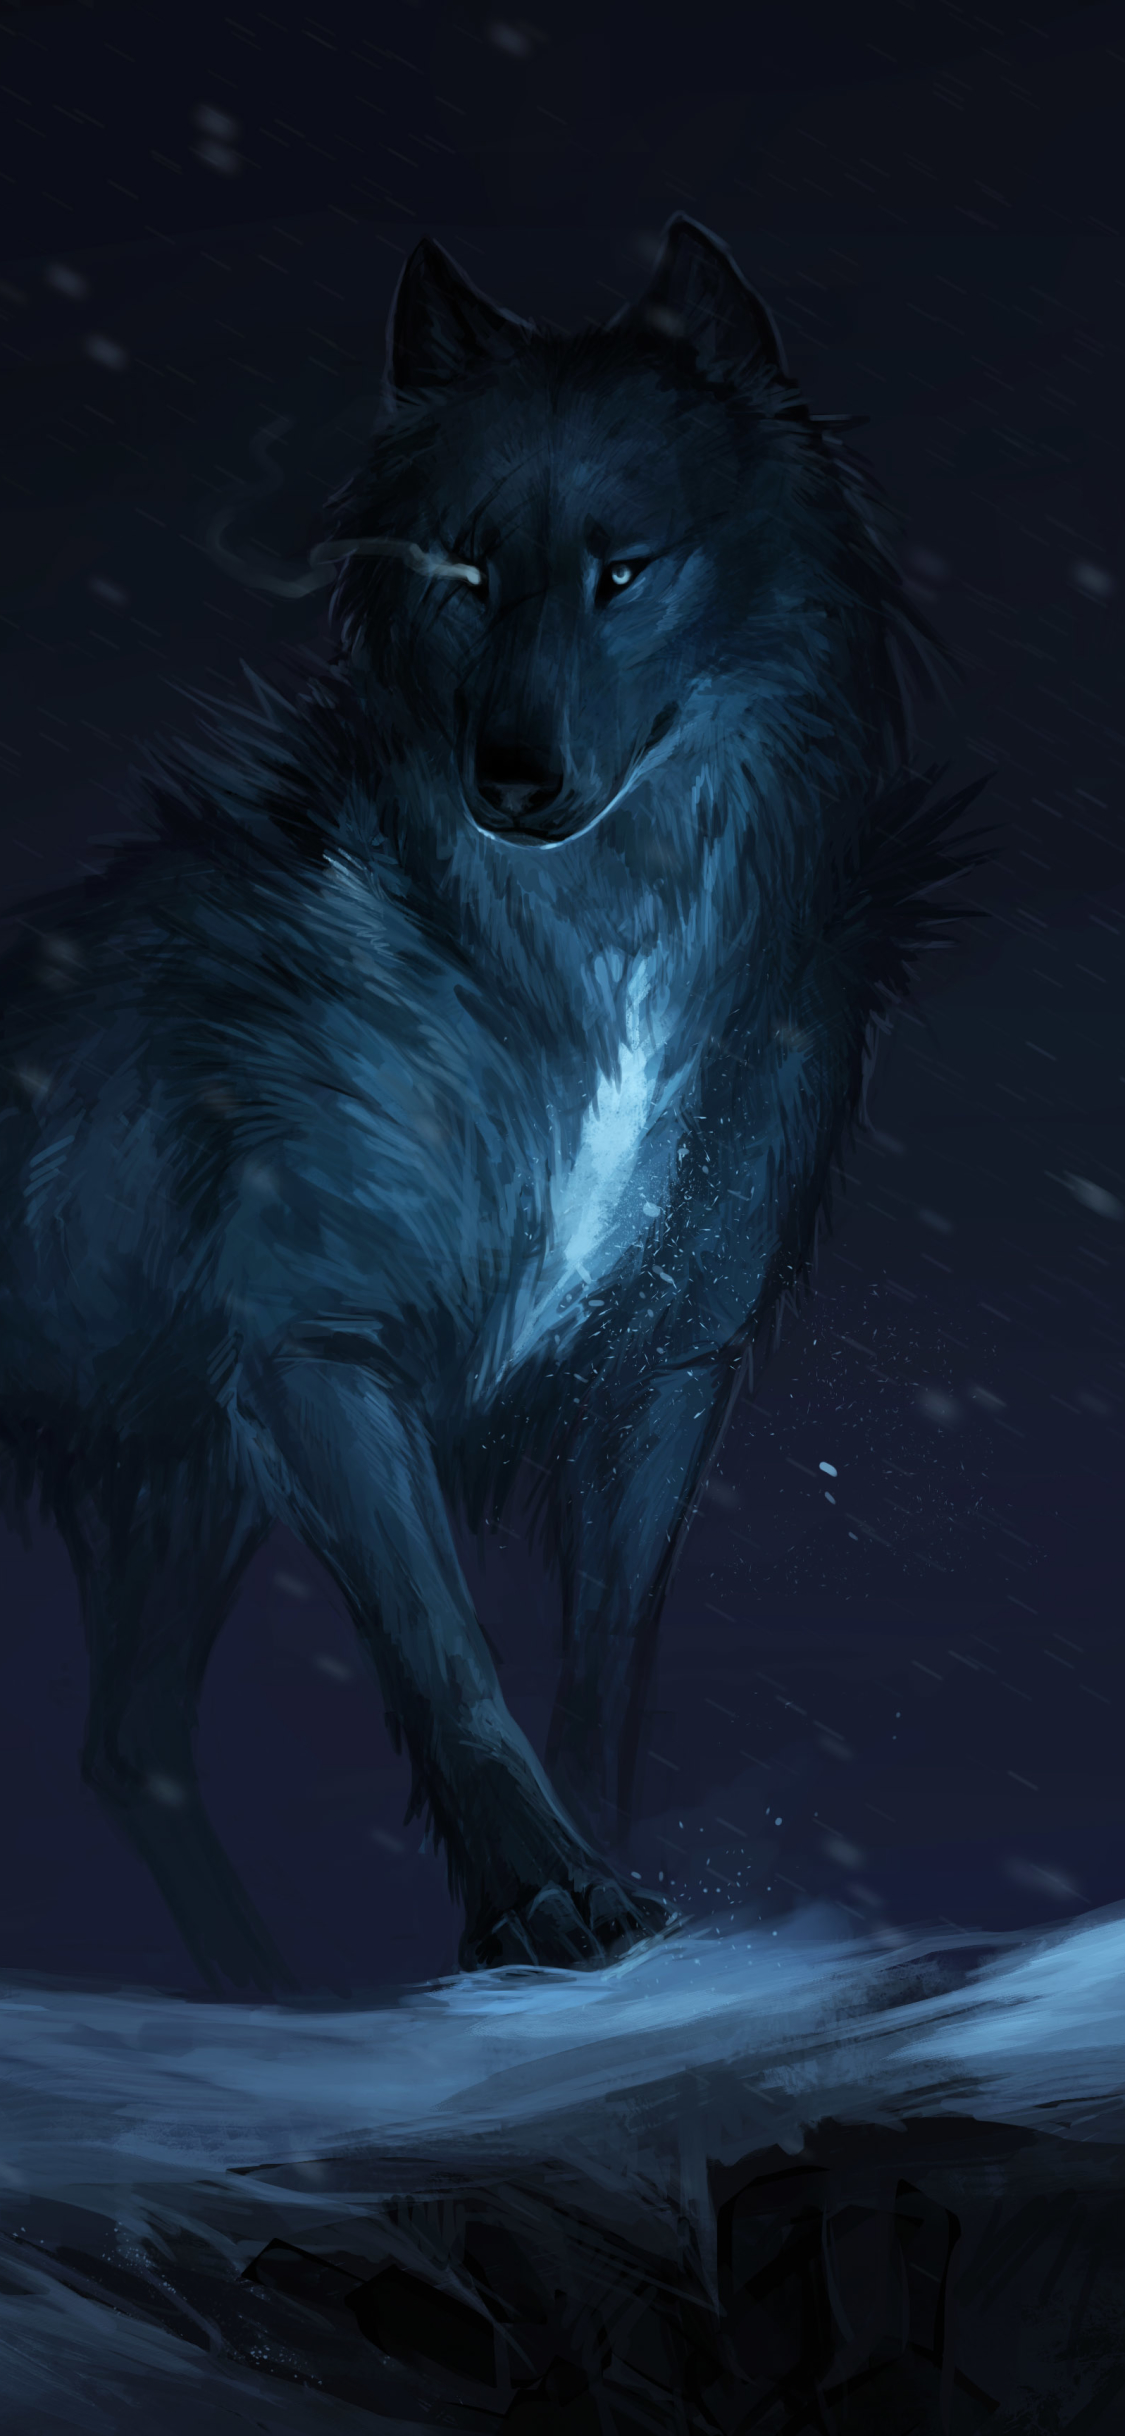 Fantasywolf 1080x2340 Wallpaper Id 814831 Mobile Abyss